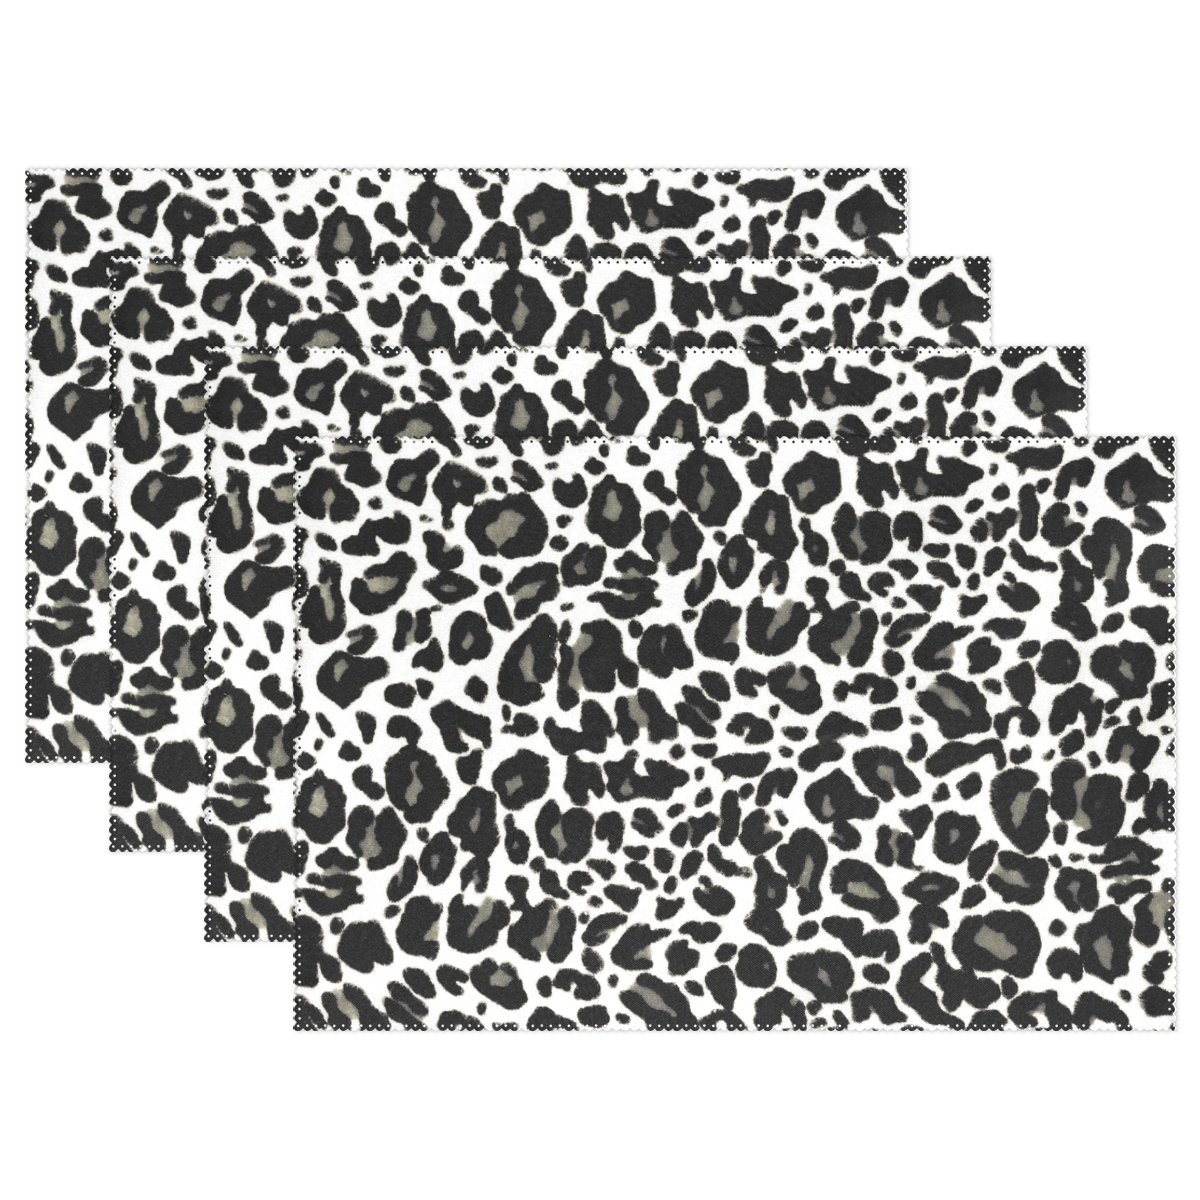 WOZO Leopard Print Placemat Table Mat, Animal Zebra Print 12'' x 18'' Polyester Table Place Mat for Kitchen Dining Room Set of 4